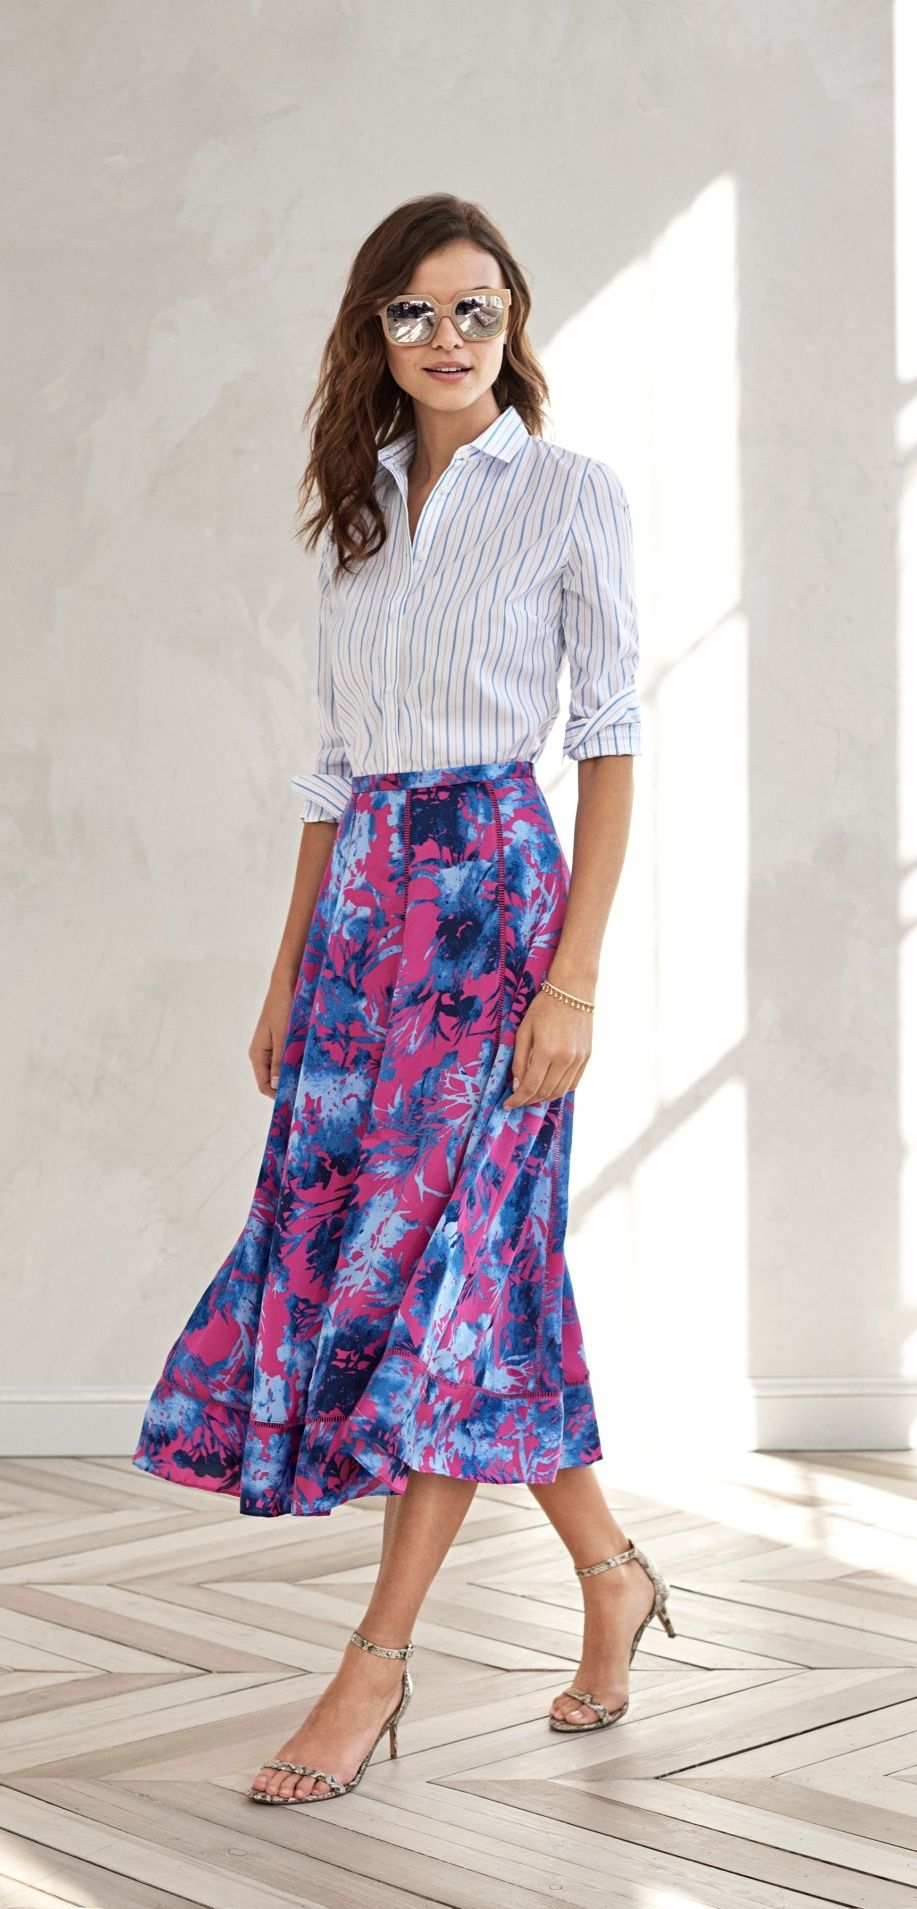 569ff85be8d96 ... to your summer style with our bold hot pink and blue floral print midi  length skirt. Pair this ruched panel skirt with a striped button down shirt  for ...